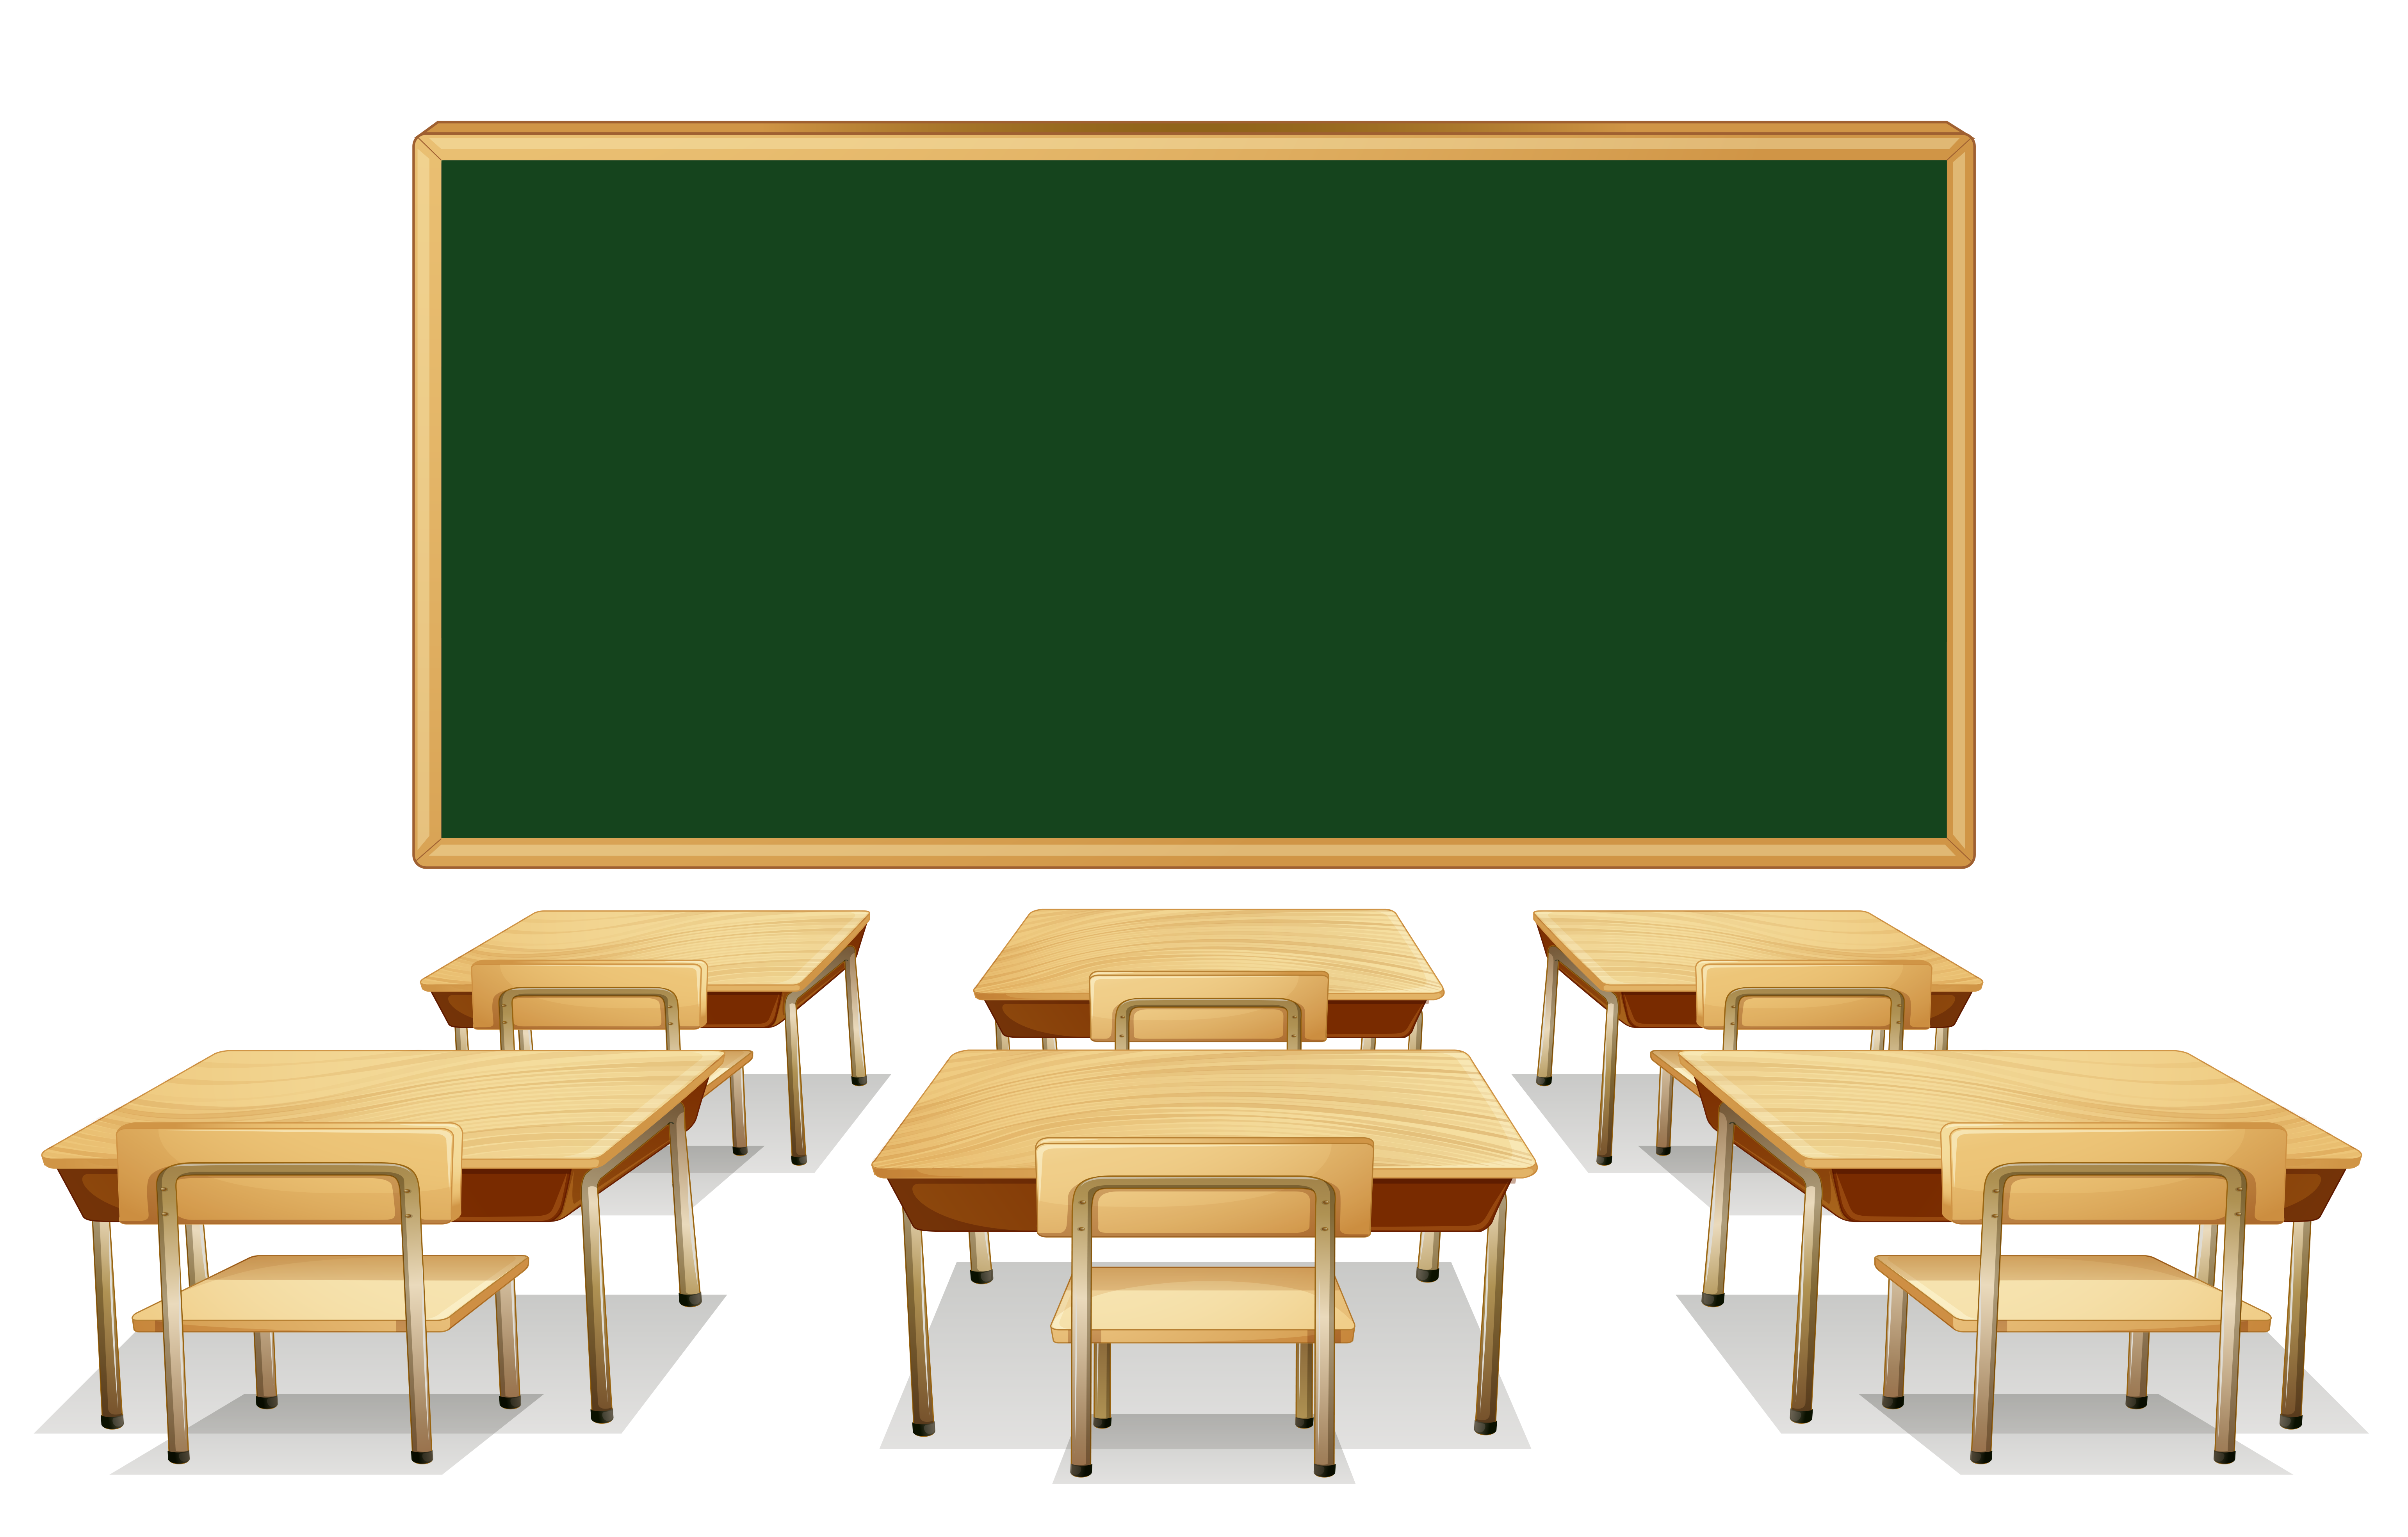 Classroom With Green Board And Desks Clipart Image